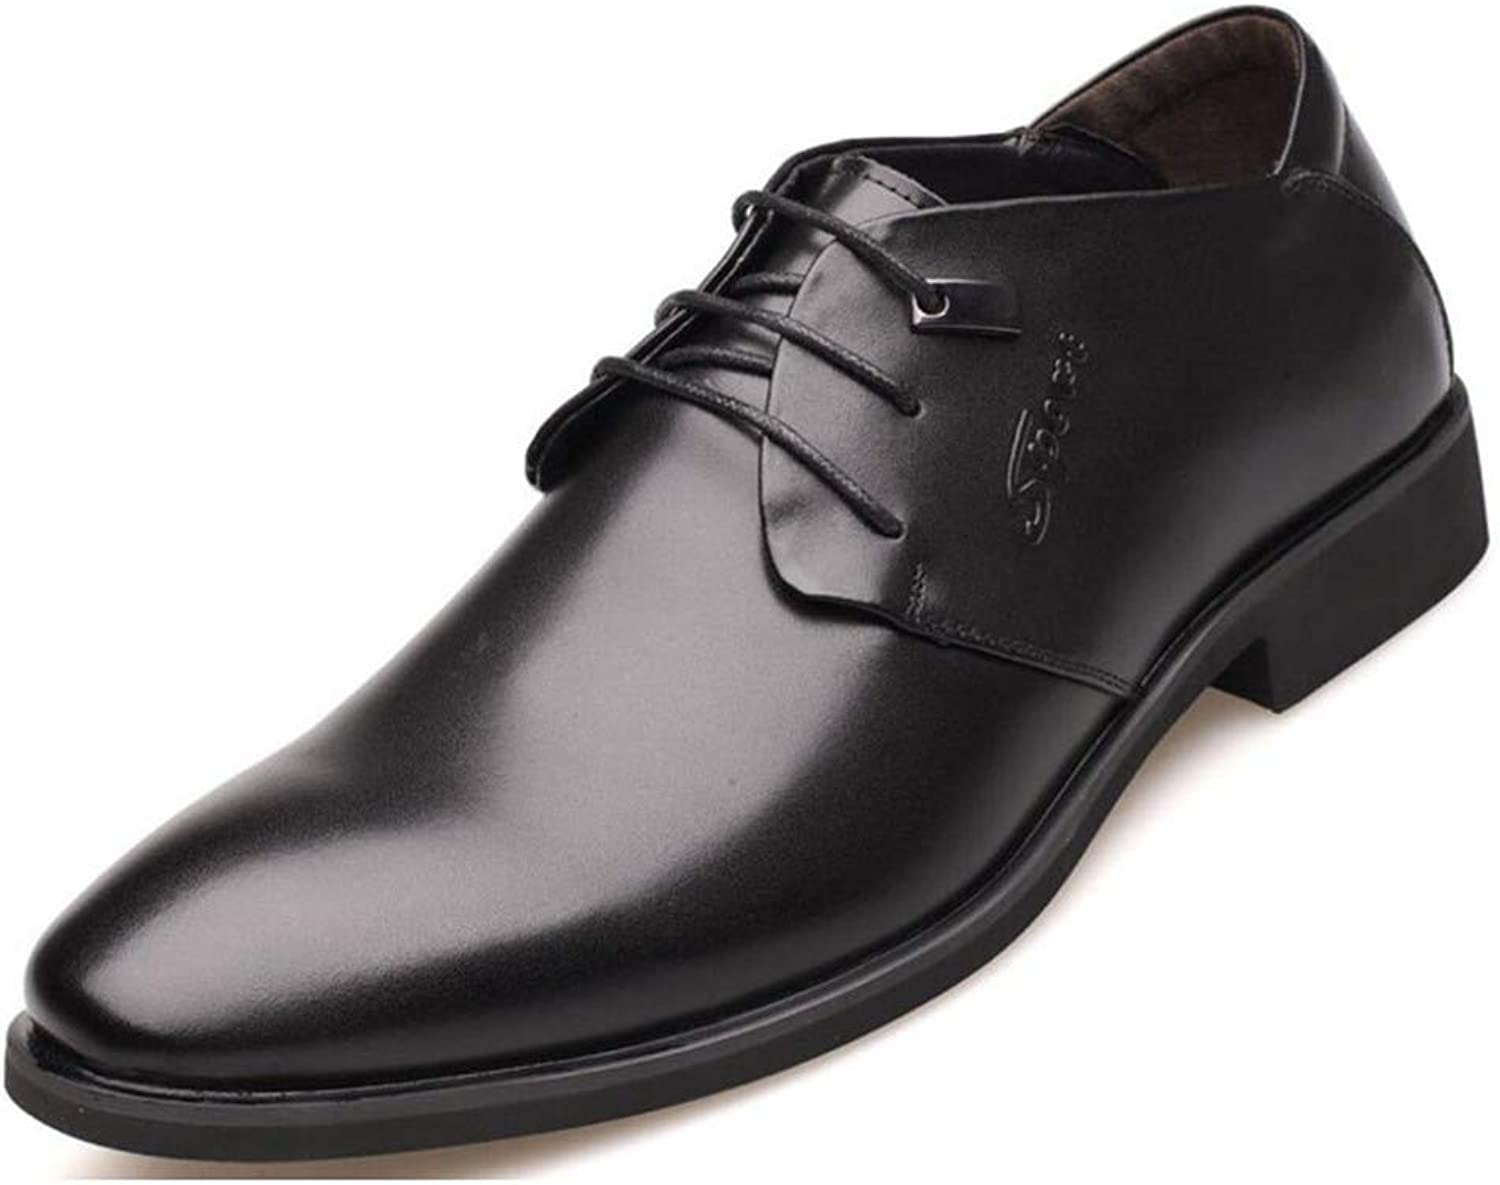 WLFHM Men's shoes, Business Casual shoes, with Pointed Toe, Single shoes